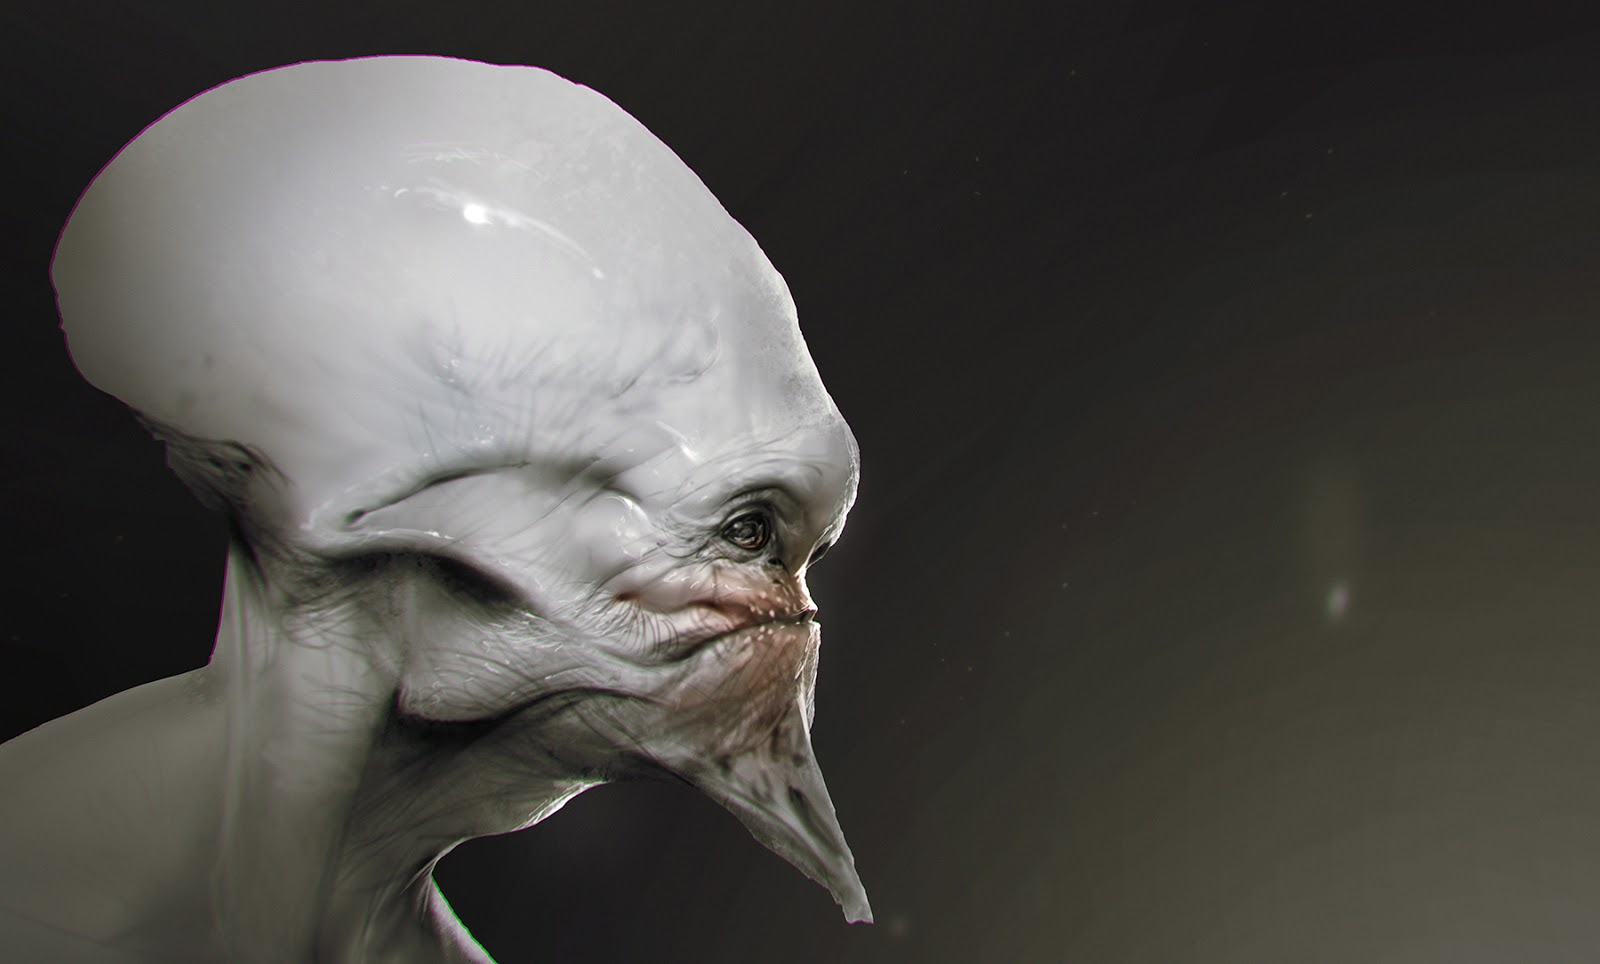 Cgi alien creature naked clips